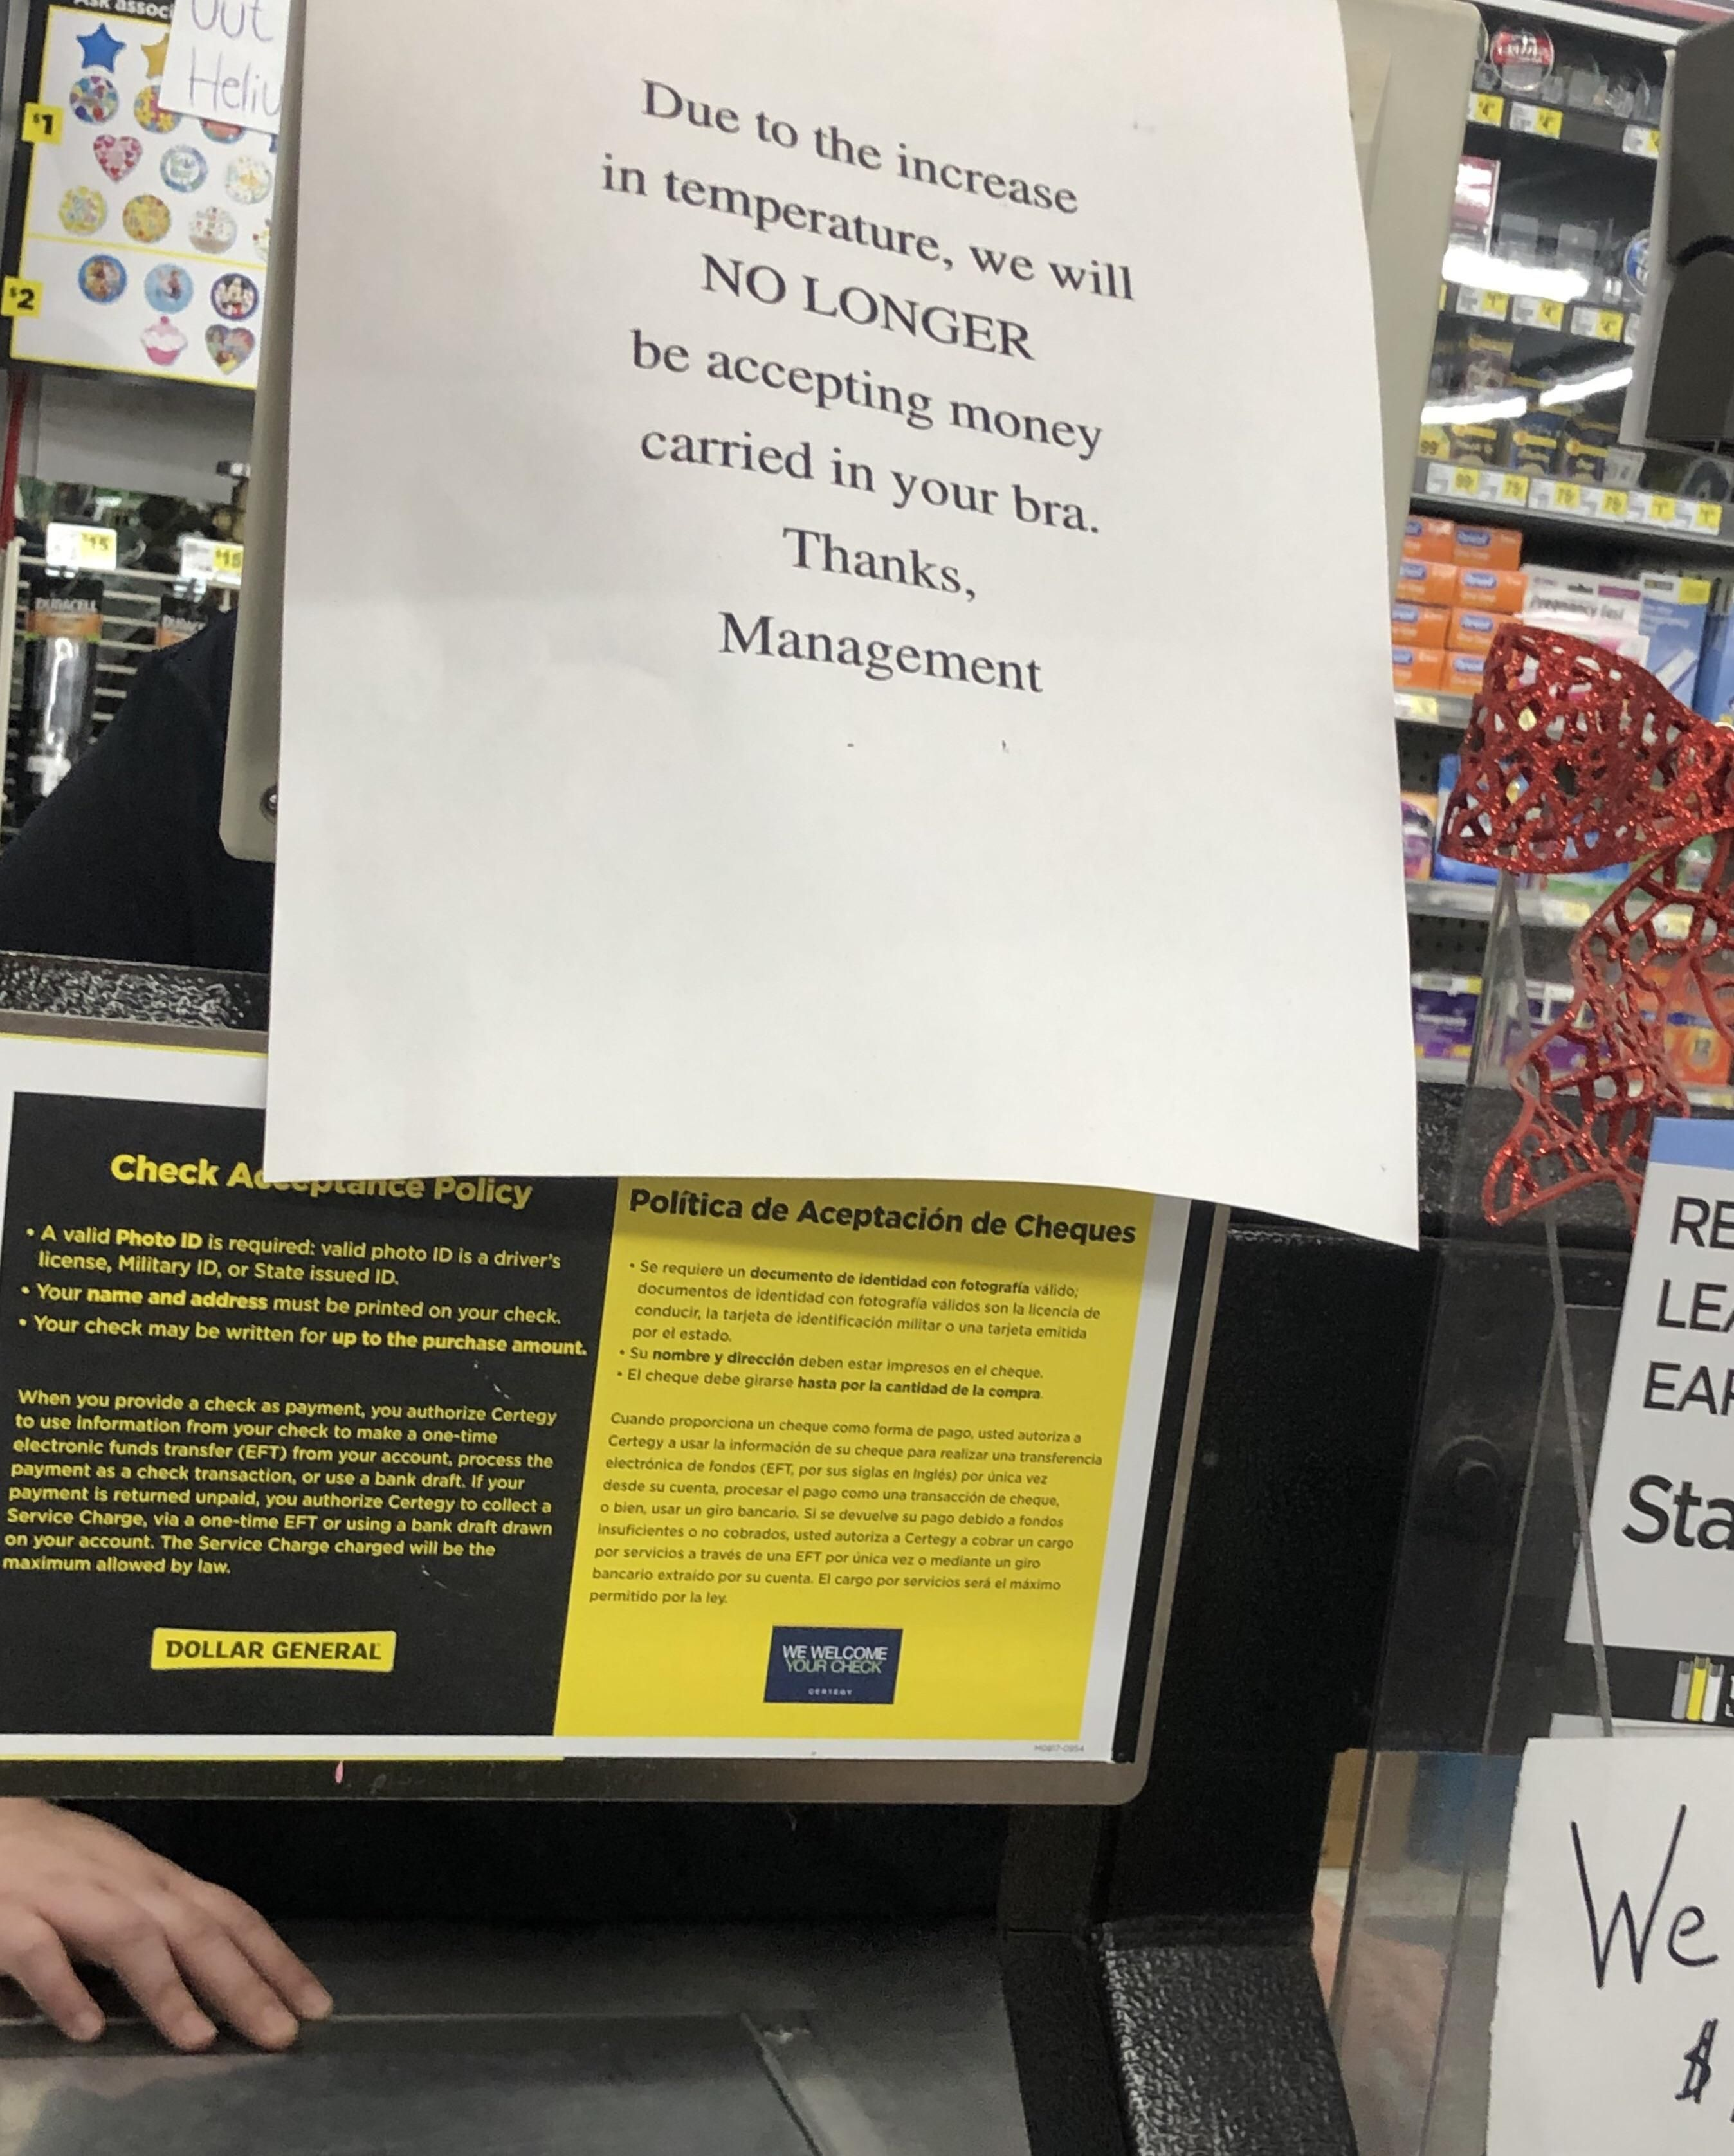 Sign at my local dollar store